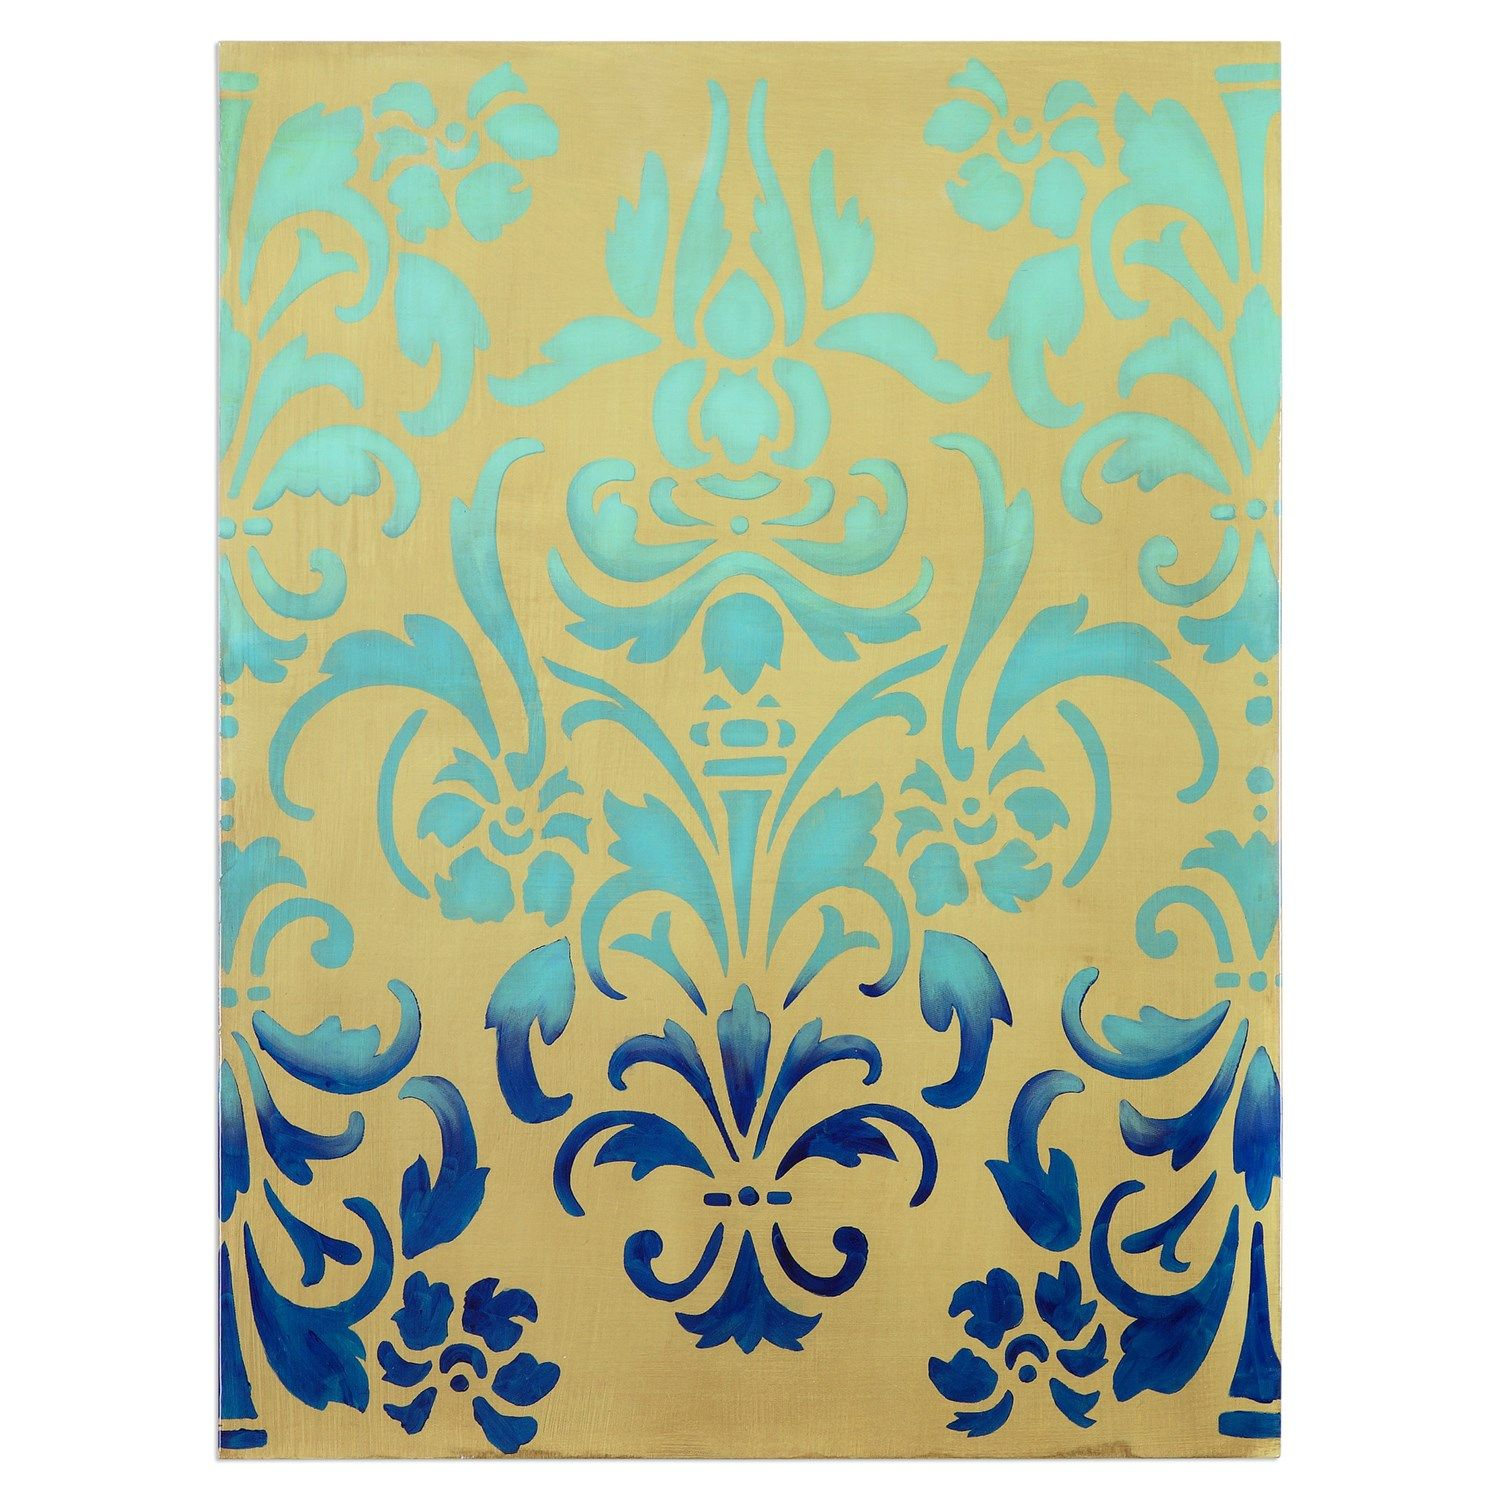 Uttermost 34420 Blue Ombre Stencil Art | Blue ombre, Ombre and ...